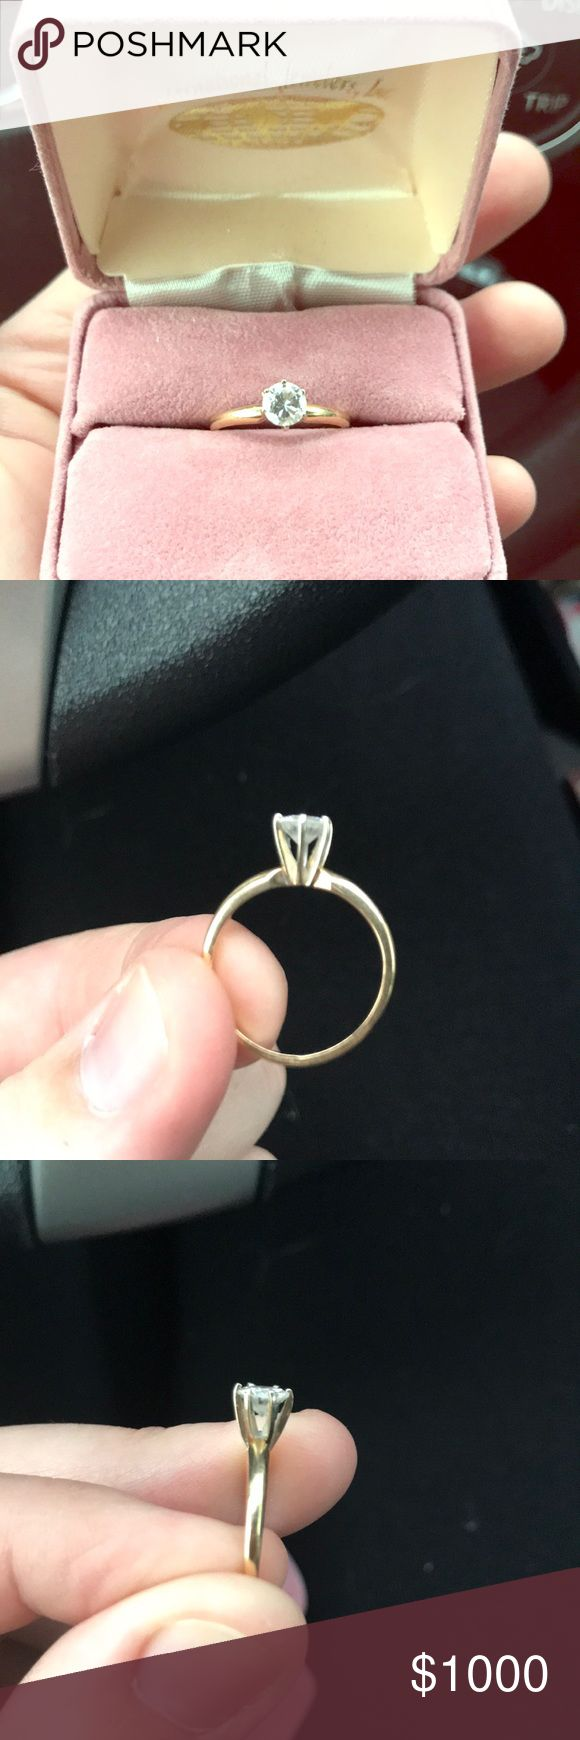 14K Gold Diamond Engagement Ring 6 Prong Selling a 14K yellow gold diamond engagement ring, size 5 but can definitely be sized at a jeweler. Only worn for a short period of time, about 1-2 months, and will come in the original box. I do not have an appraisal to provide and I am unsure of the carat, color, and clarity, but appears to be 0.25-0.45 carats.   One prong is a bit out of place (see picture 3) but is not noticeable unless you really look, and can be easily fixed by a jeweler. Feel…